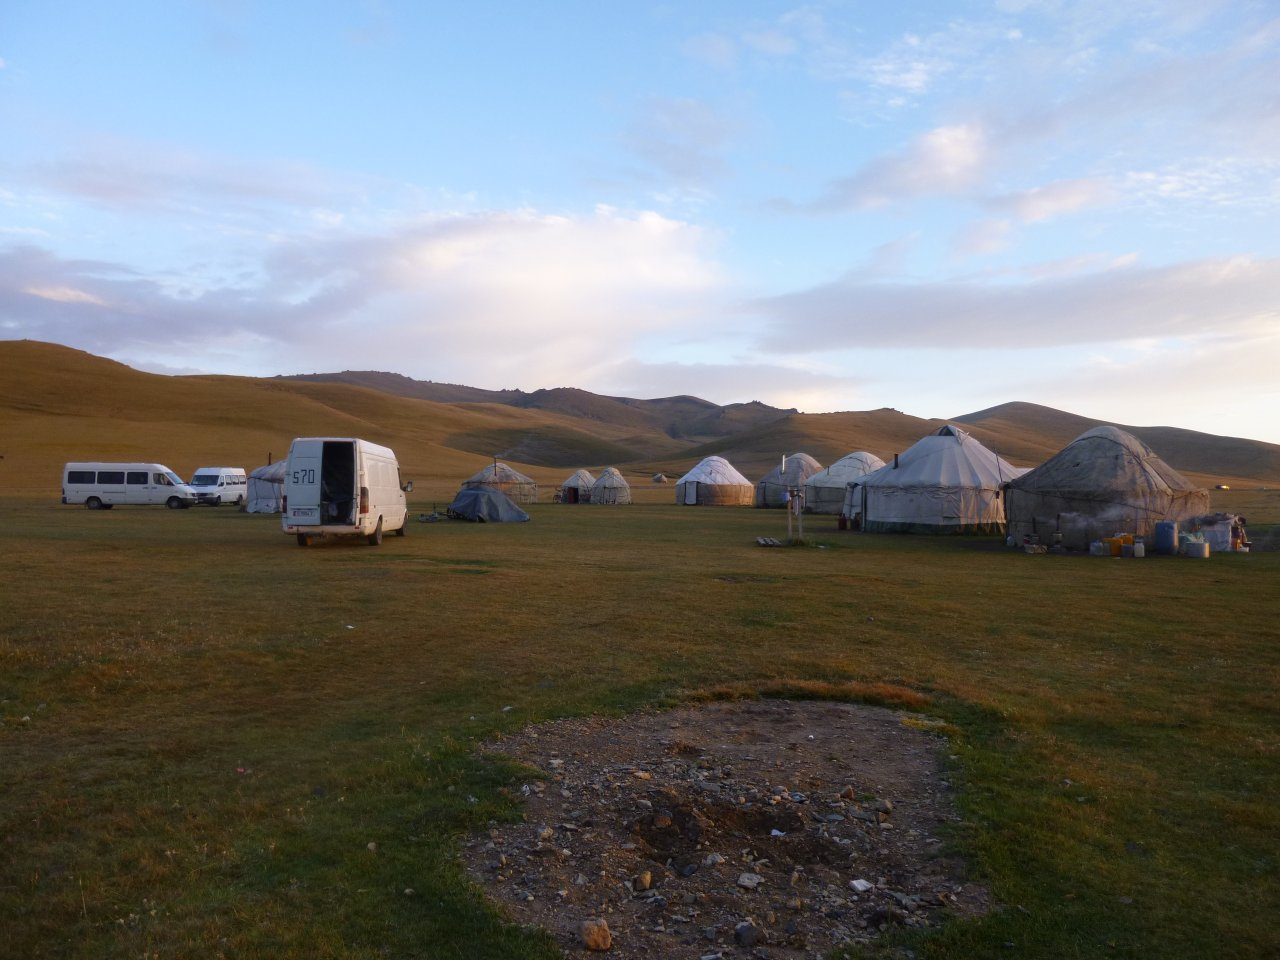 A yurt hotel (or Yurtel) is a collection of yurts, built to give tourists an authentic taste of Kyrgyz culture. The stove in each yurt burns dried dung and keeps the occupants toasty warm.